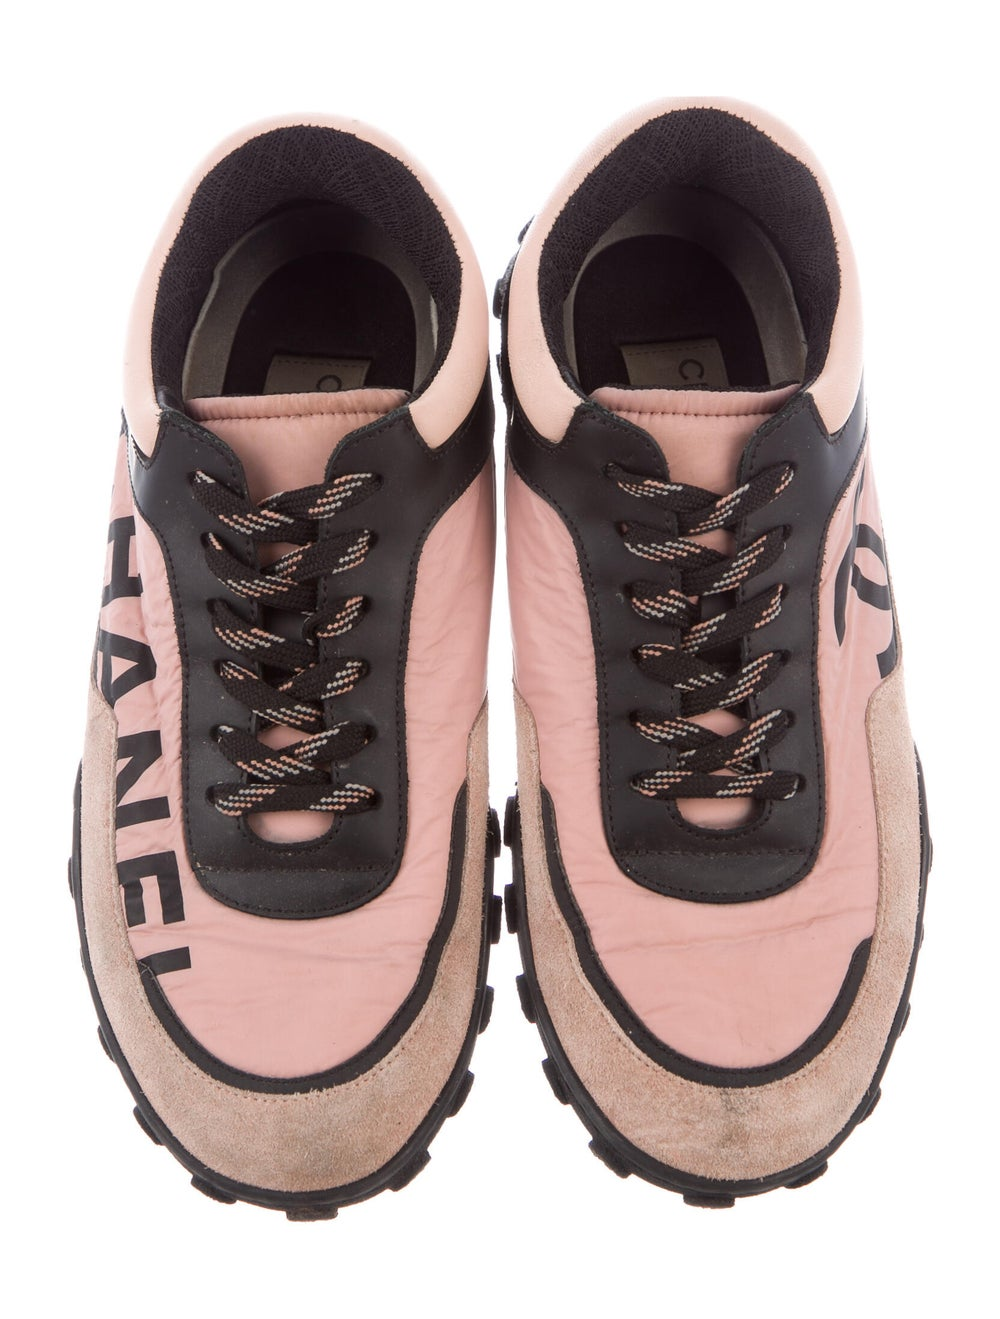 Chanel Suede Colorblock Pattern Sneakers Pink - image 3